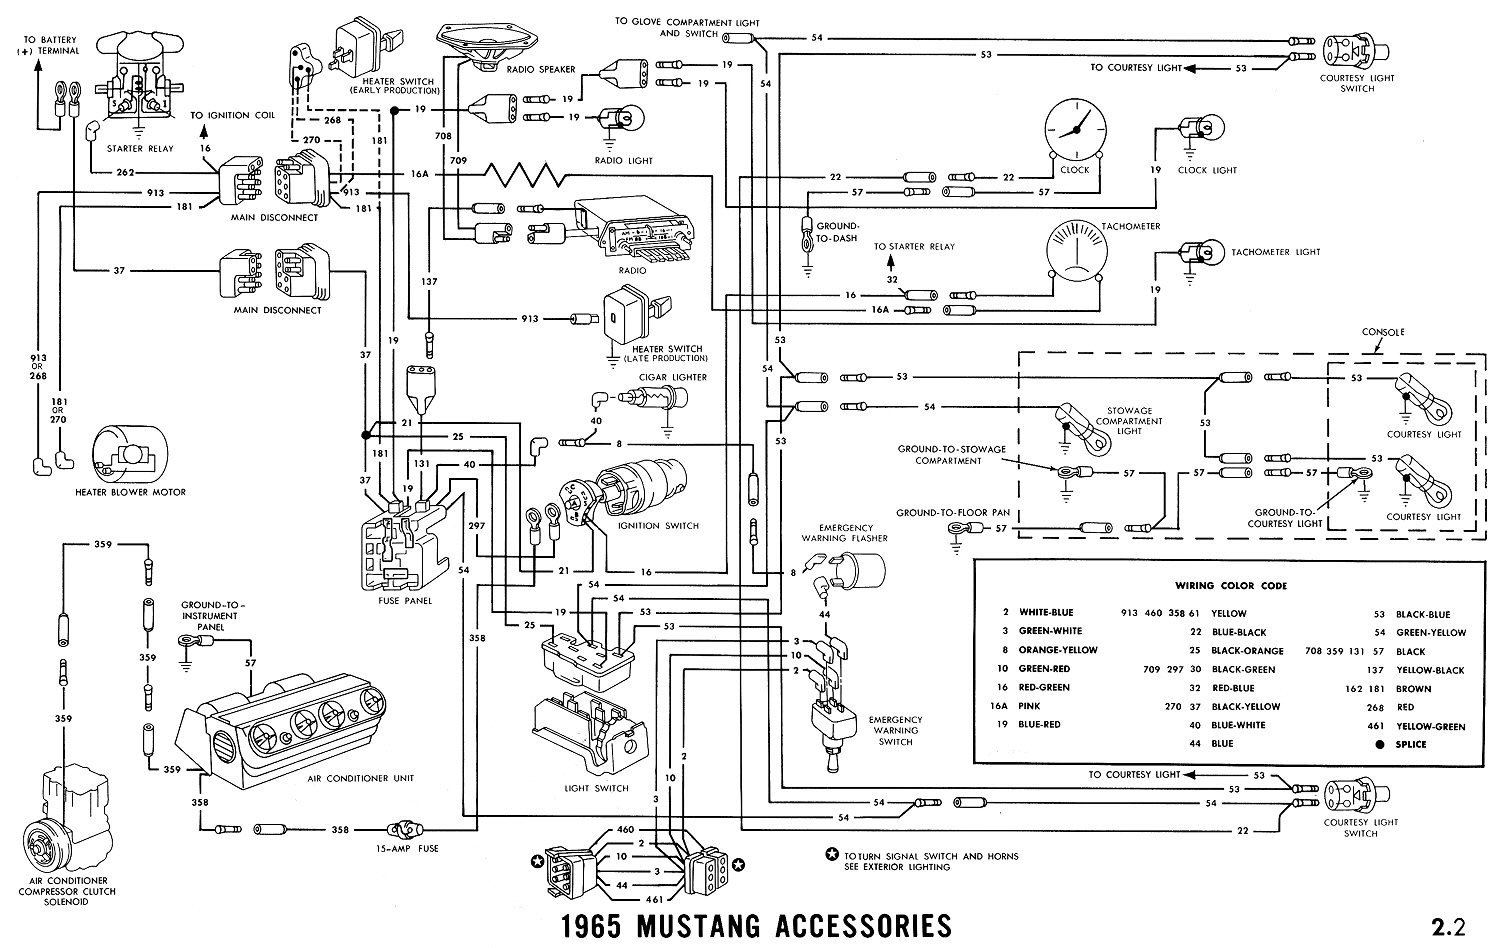 mustang wiring diagrams average joe restoration 1965 mustang accessories pictorial or schematic air conditioner